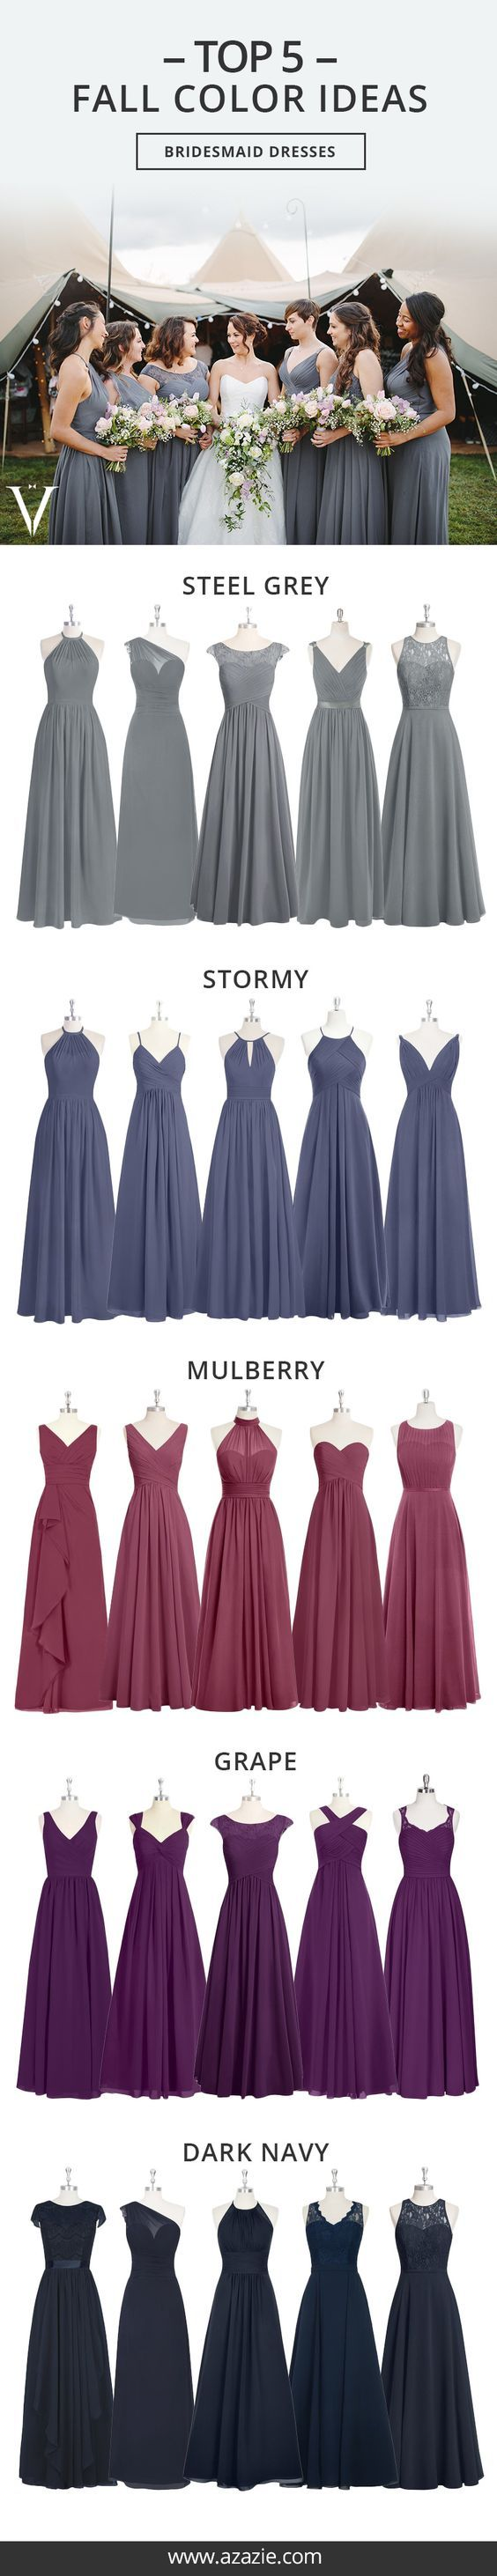 These fall colors are perfect for your bridesmaids dresses at an autumn wedding. Lovely!